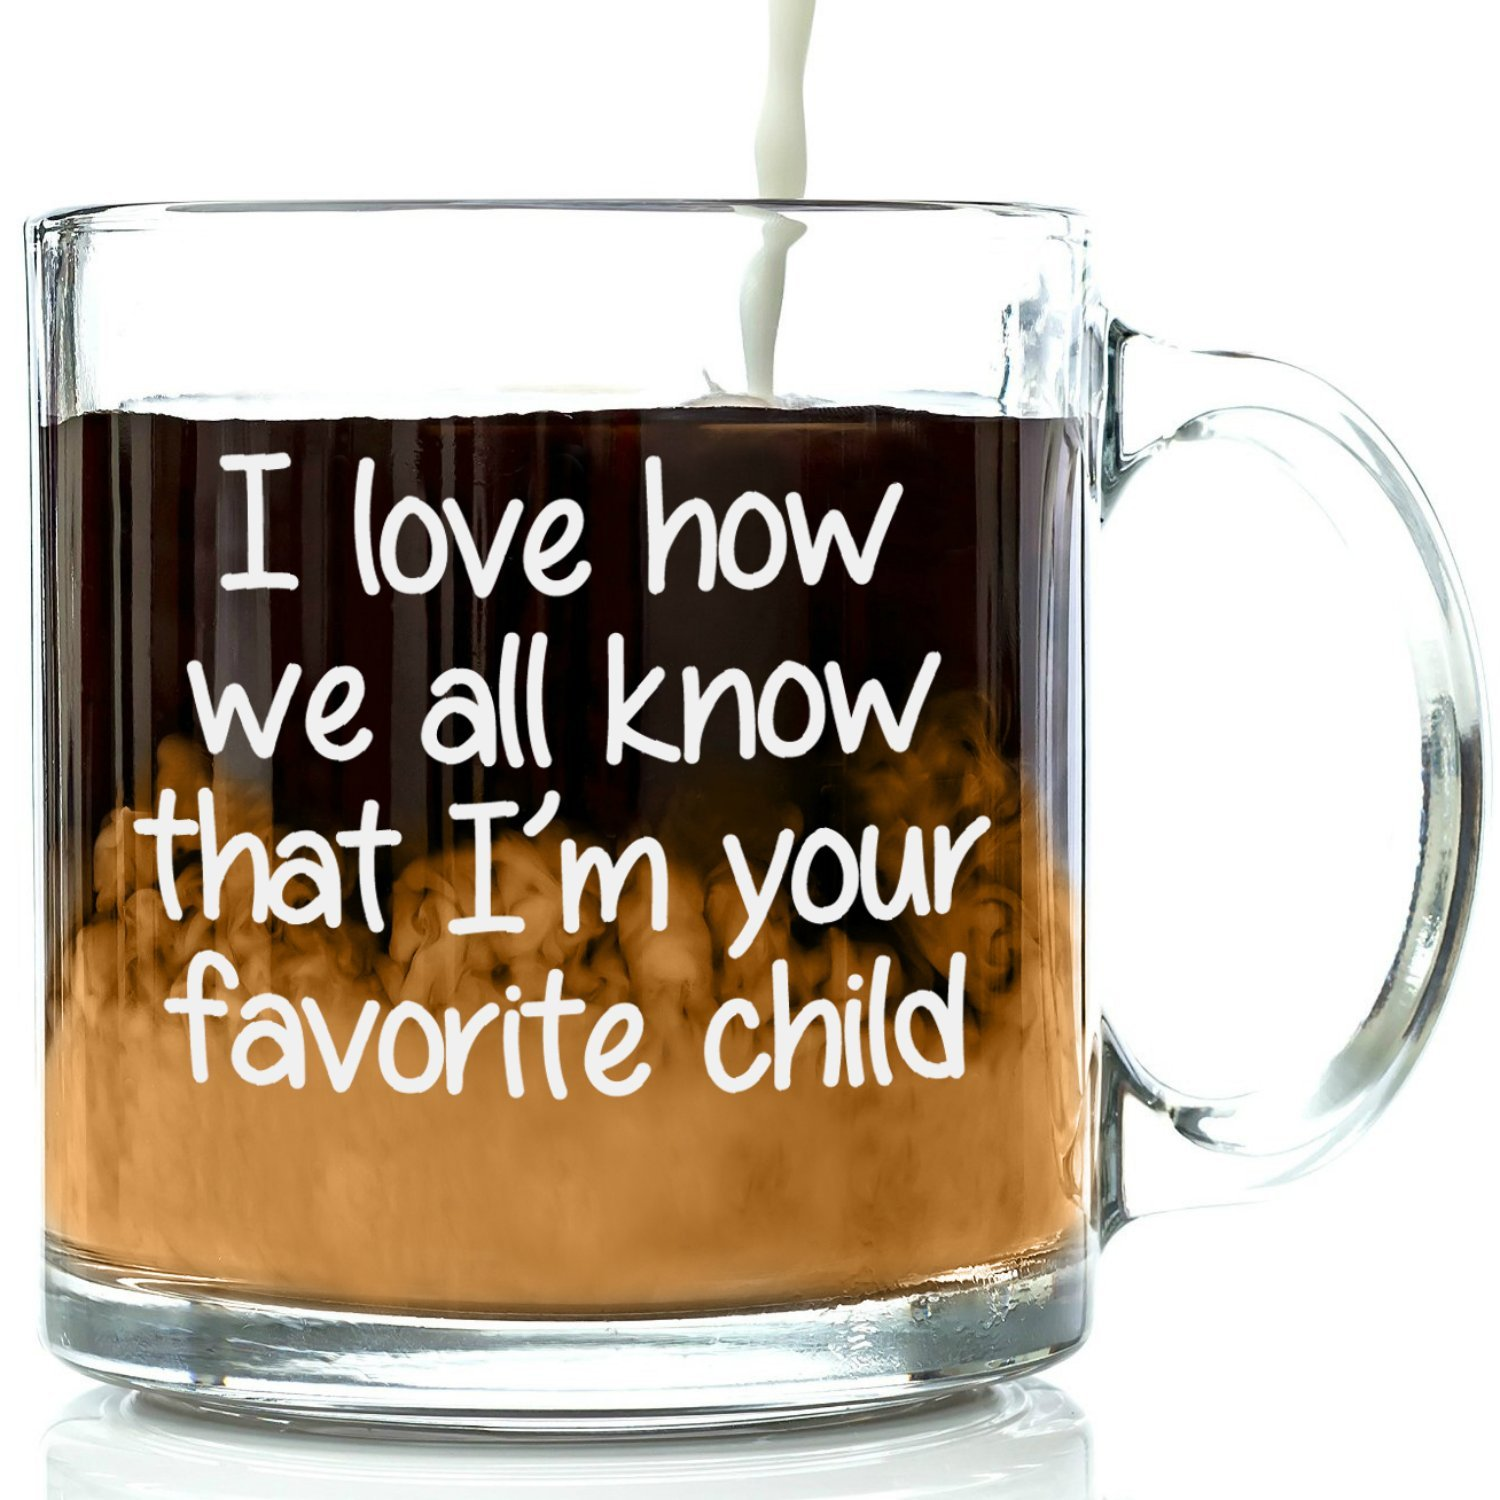 I'm Your Favorite Child Funny Glass Coffee Mug – Fun Mother's Day Gifts For Mom – Cool Novelty Birthday Present Idea For Parents – Unique Cup For Men, Women, Him or Her From Son or Daughter